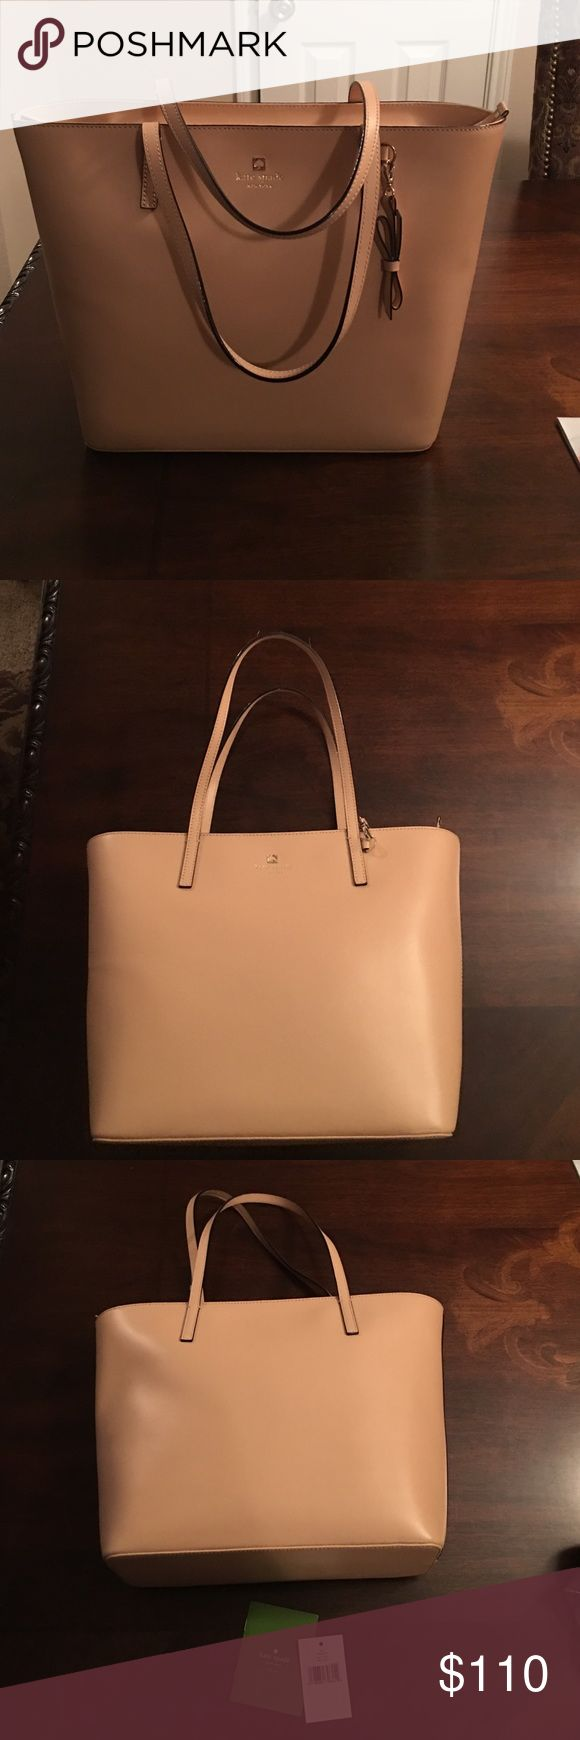 Tan Kate Spade Travel Tote Smooth leather Kate Spade tan Tote bag. Never worn. Open to offers. kate spade Bags Totes